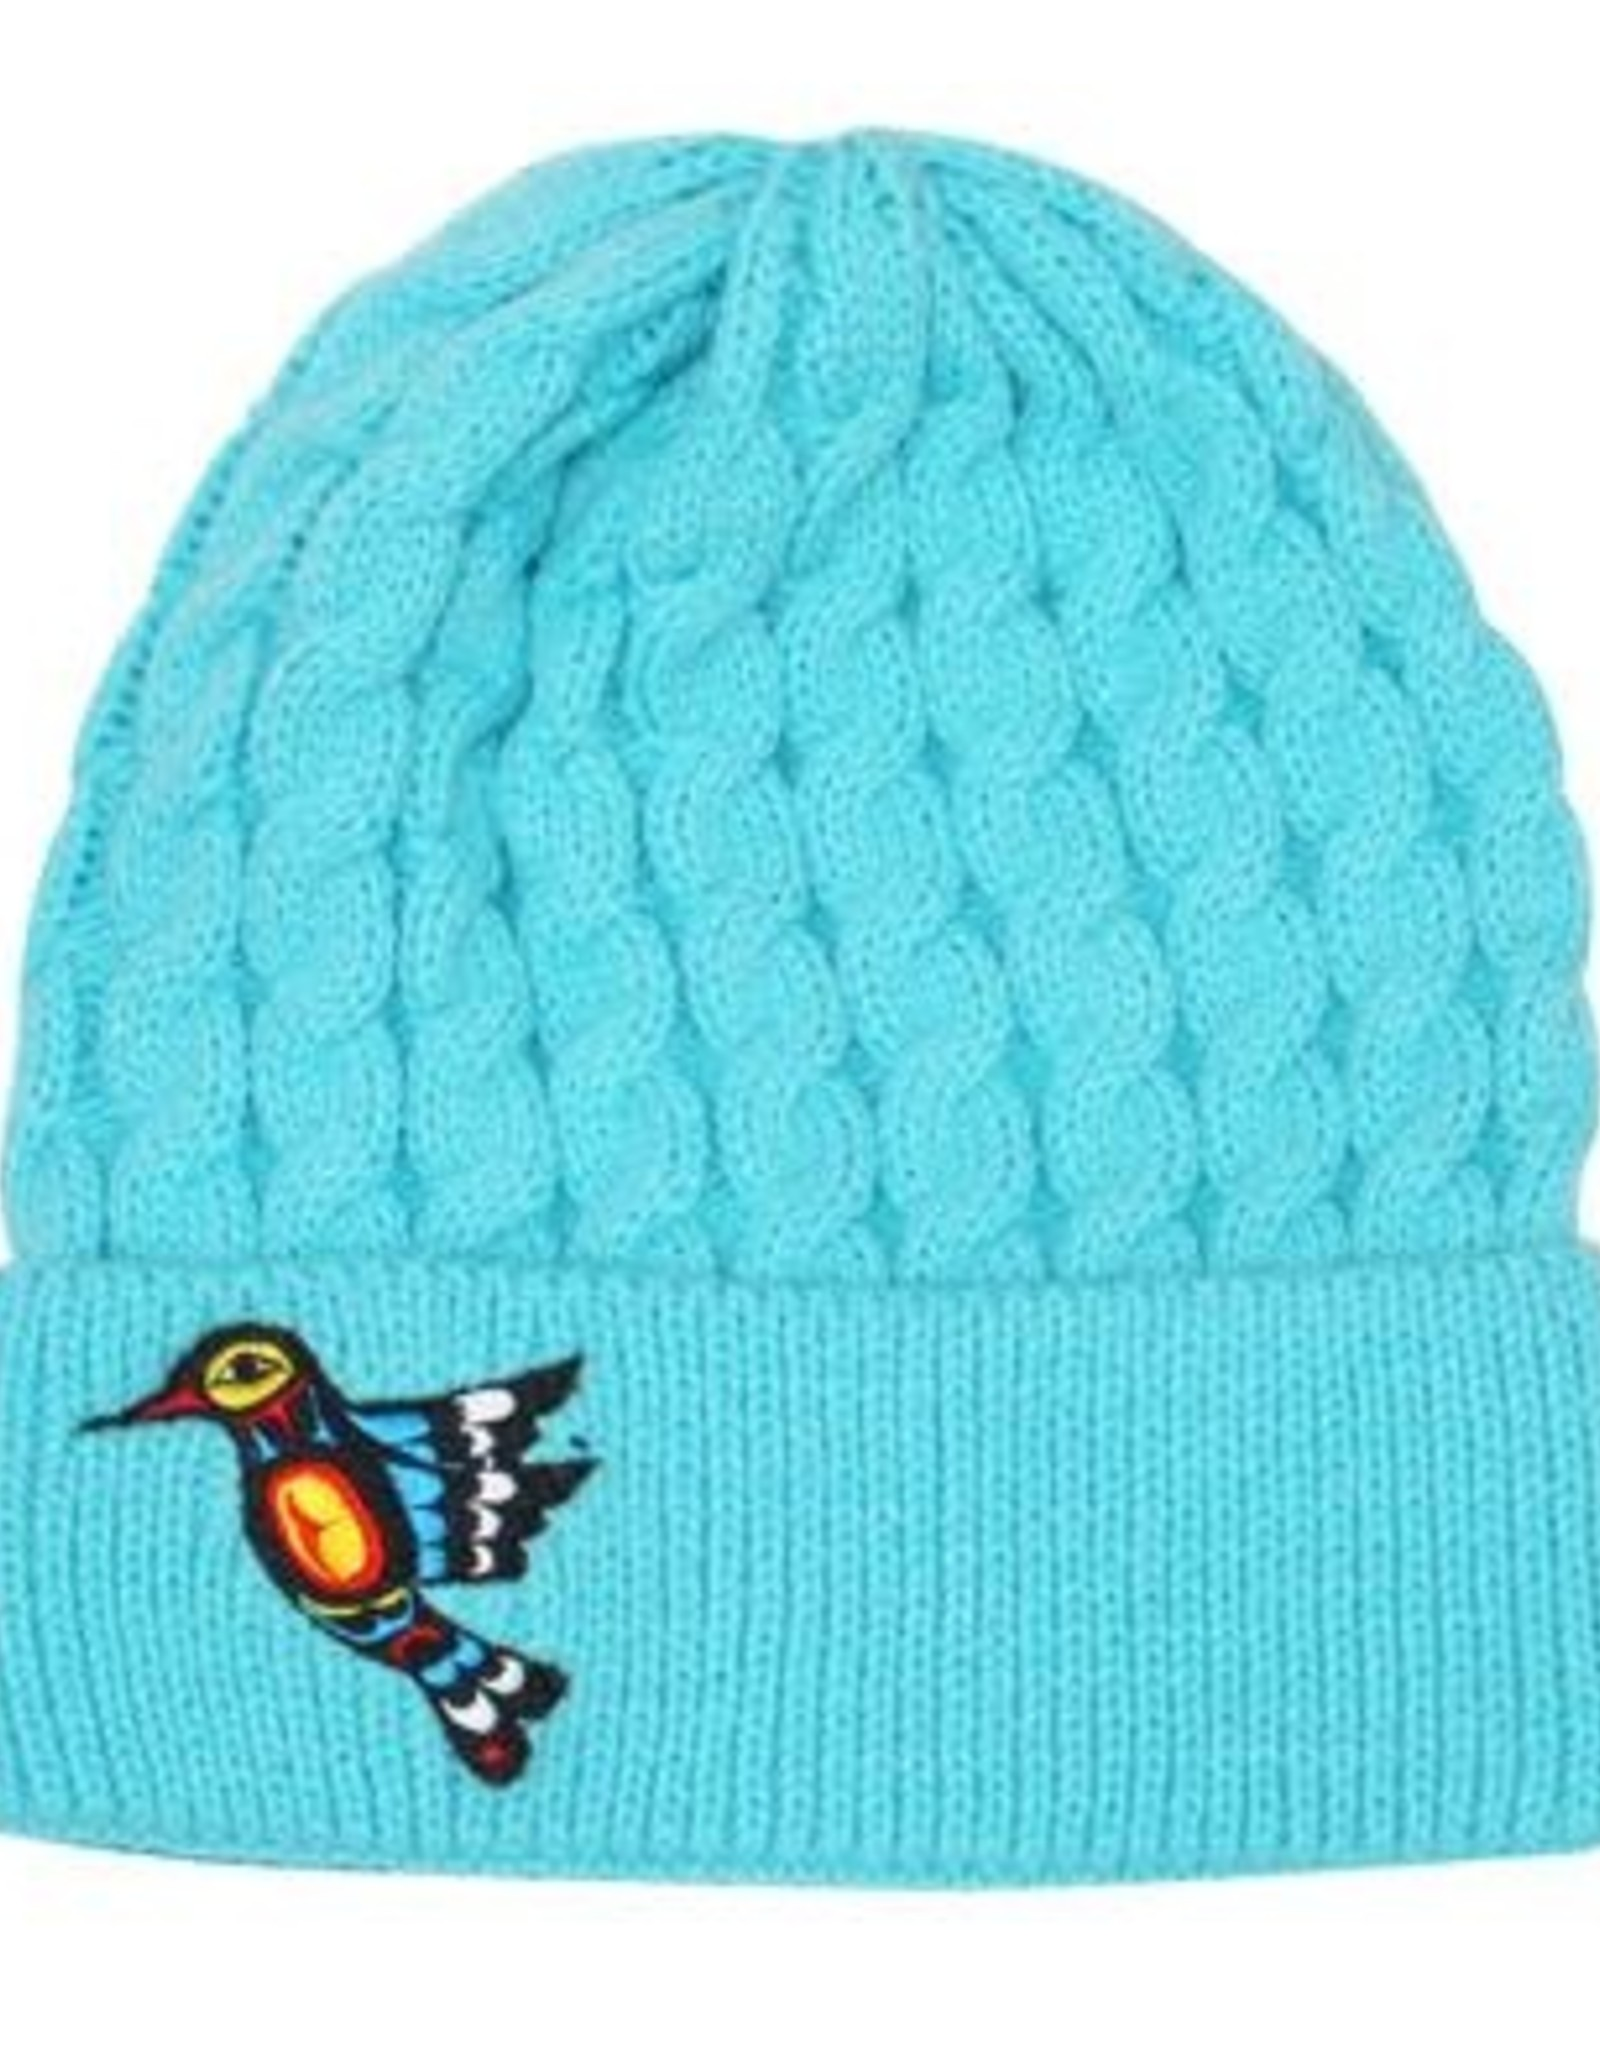 Embroidered Knitted Hat-Hummingbird by Francis Dick